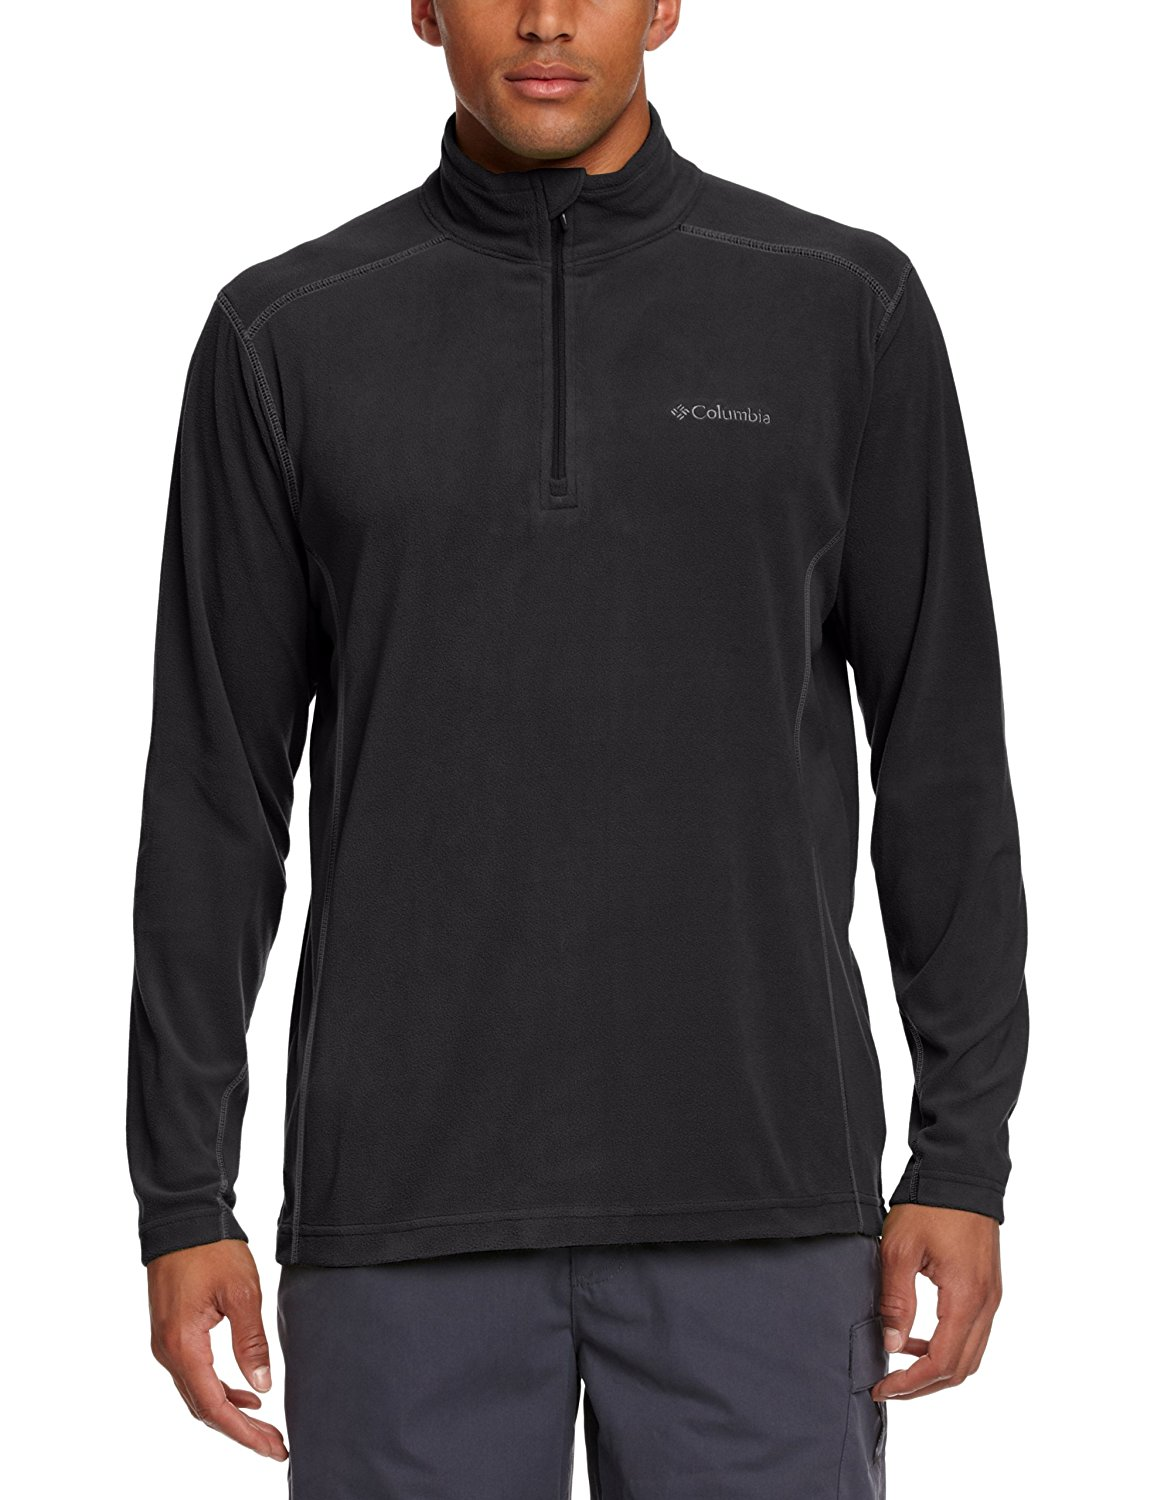 Columbia Men's Klamath Range II Half Zip Fleece